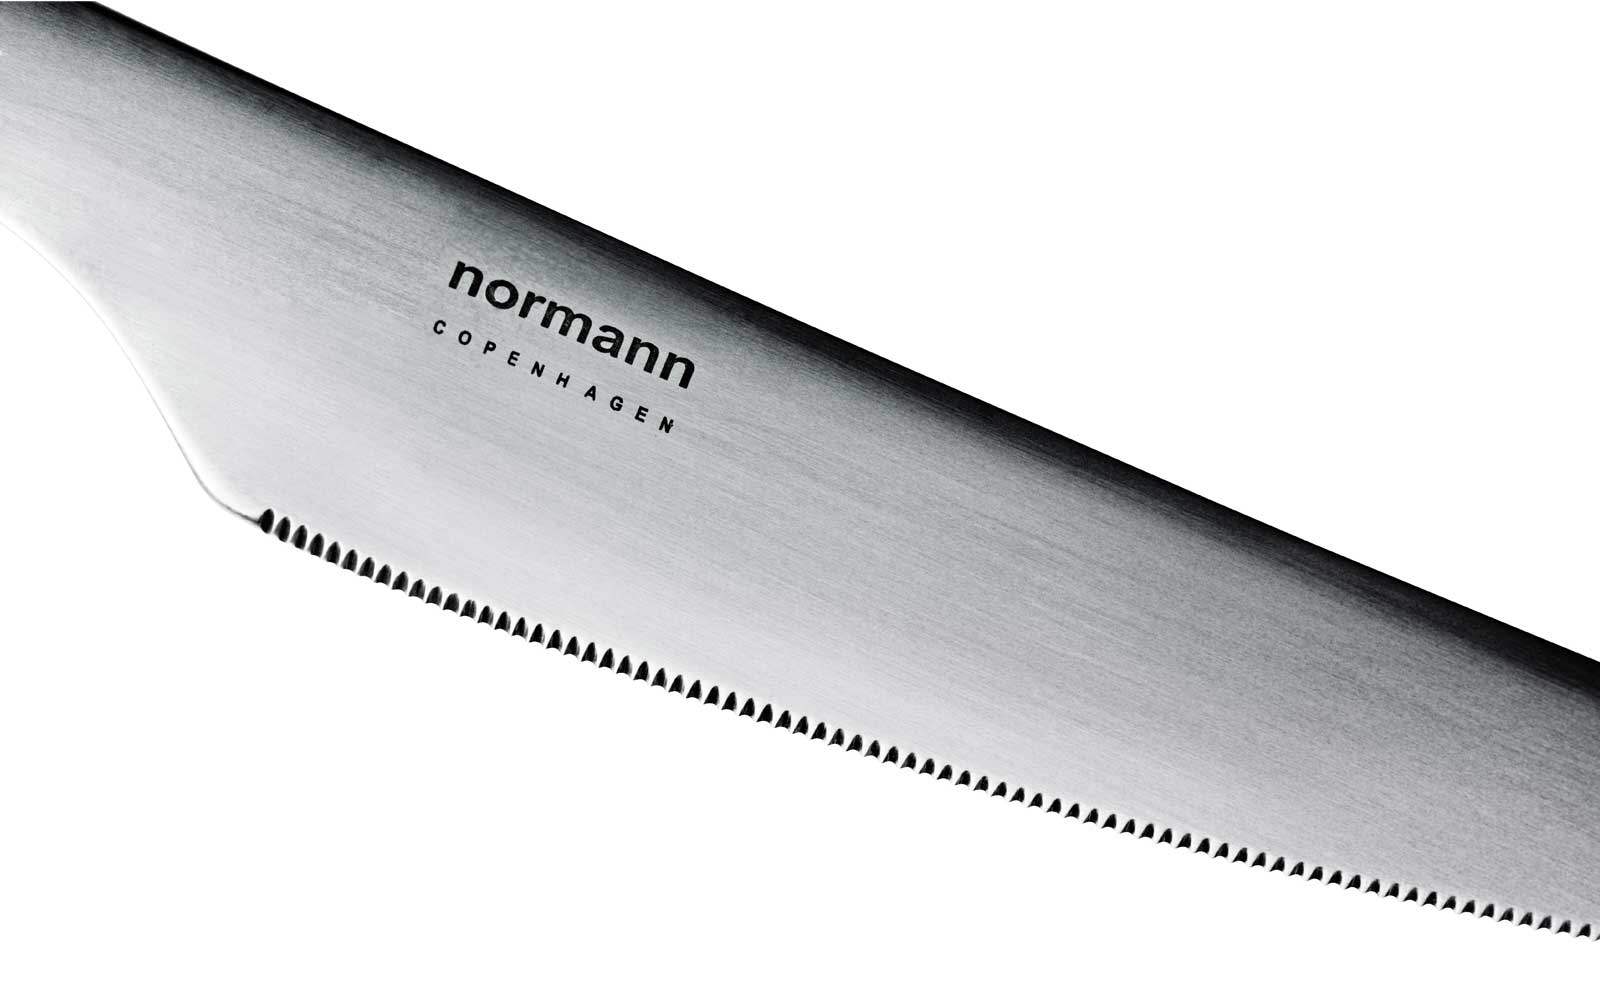 NormannCutlery Knife Detail NC